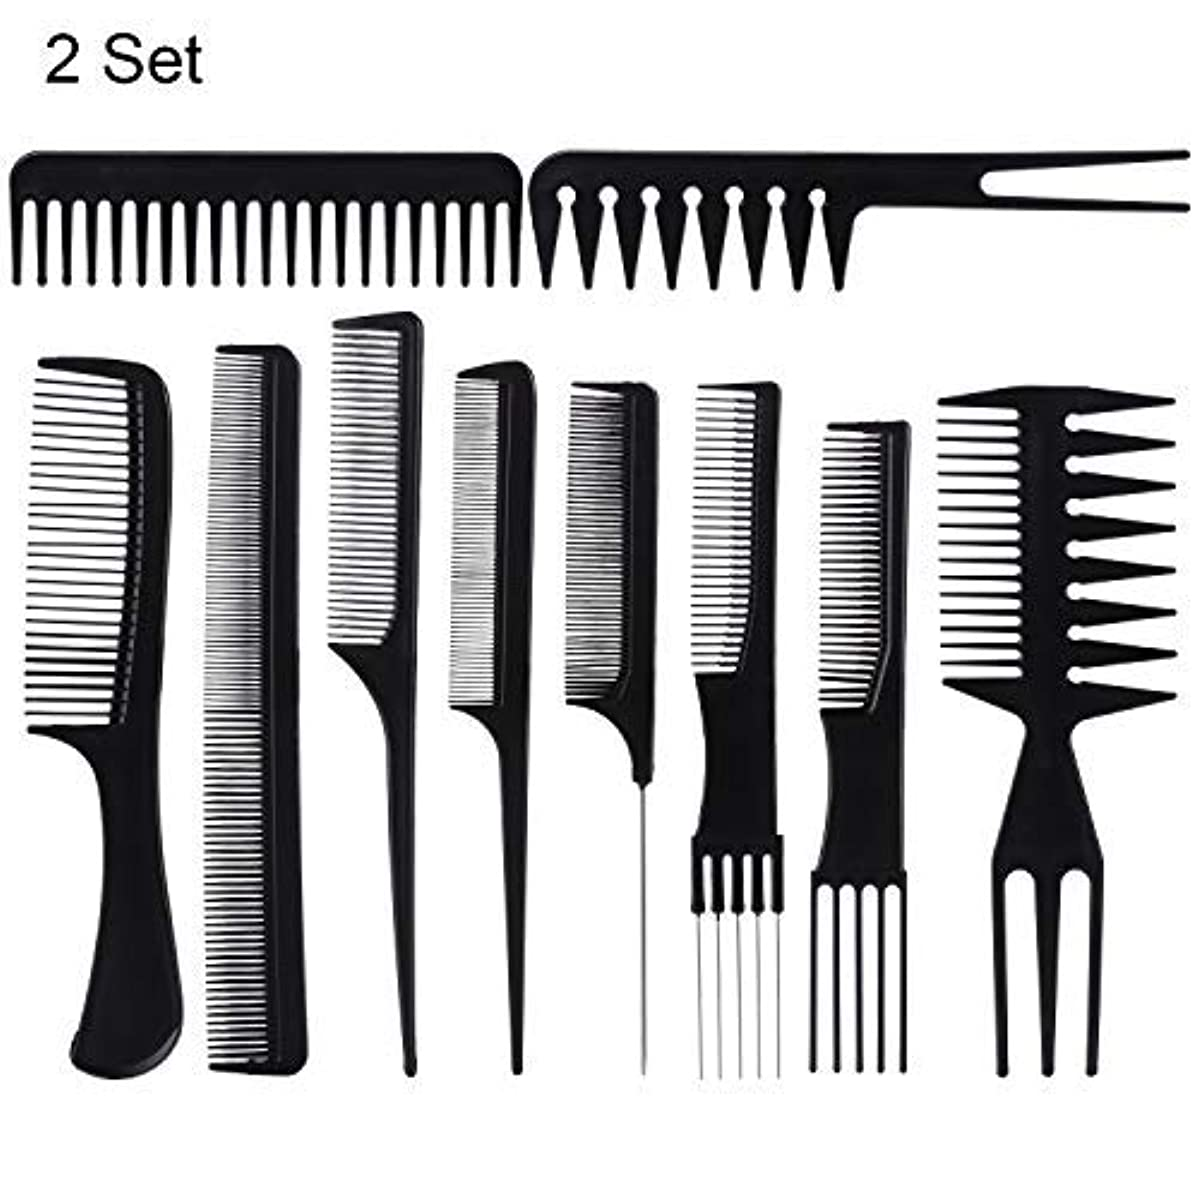 20 Piece Professional Styling Comb Set for Making hair style [並行輸入品]